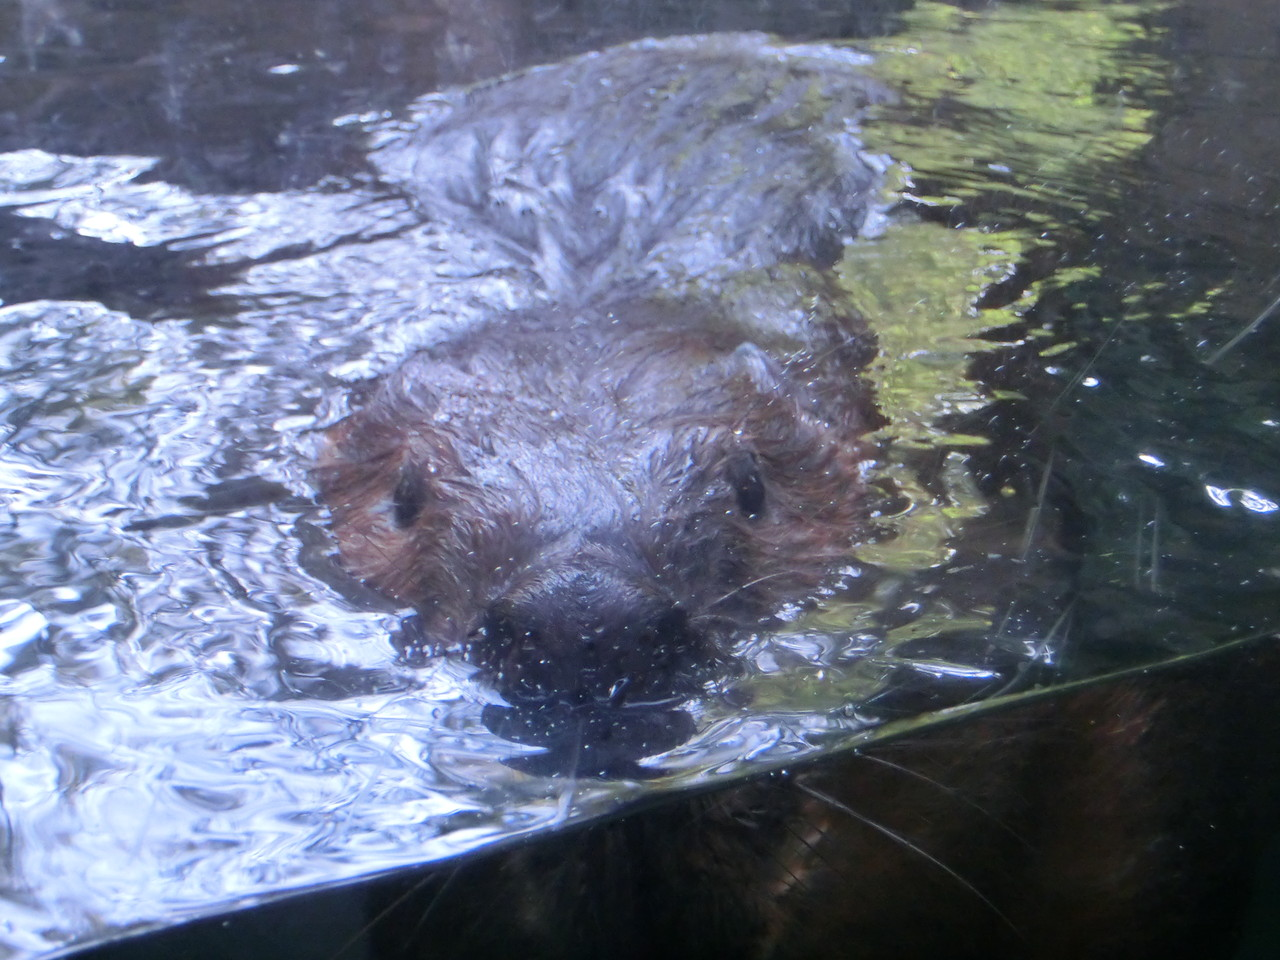 Bieber - Lincoln Park Zoo - Chicago